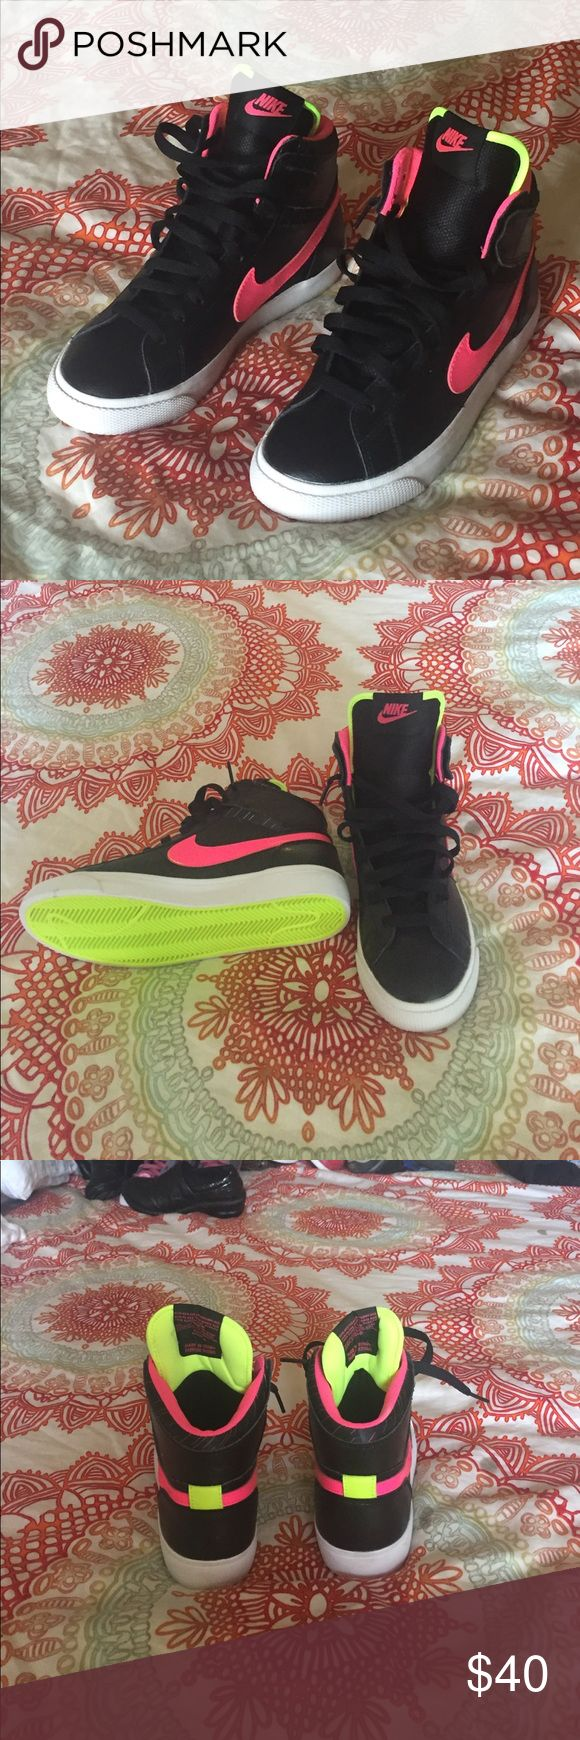 Nike high top sneaker Size: 5 / never worn / neon pink / neon green / black Nike Shoes Sneakers